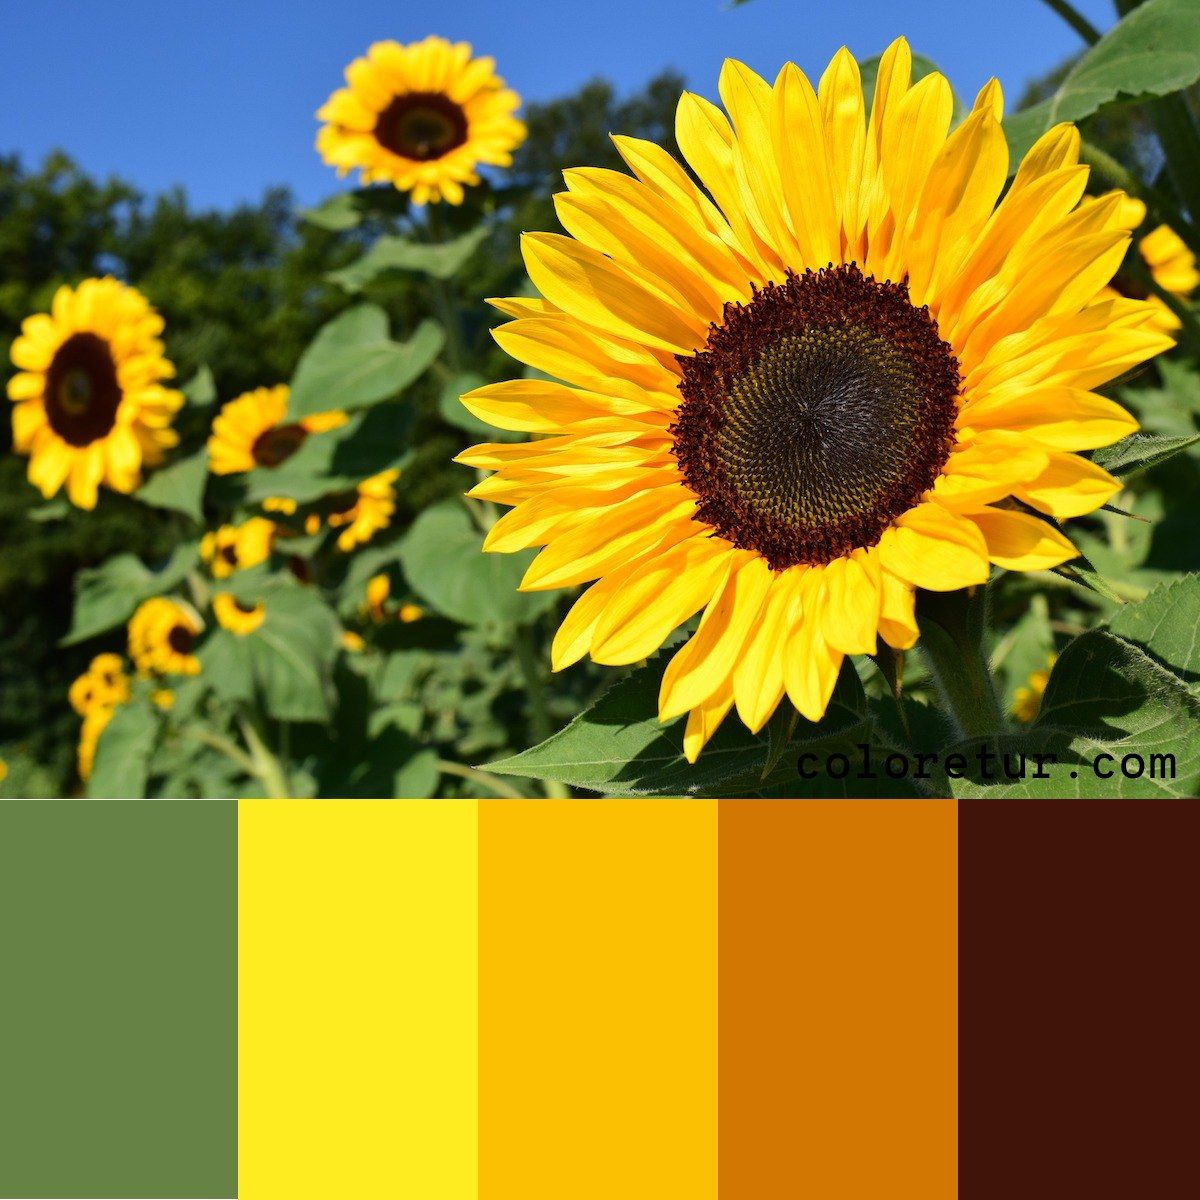 Sunflower A Bright Sunflower Makes A Vibrant Color Palette Download The Swatches Now Sunflower Colors Yellow Photography Vibrant Colors